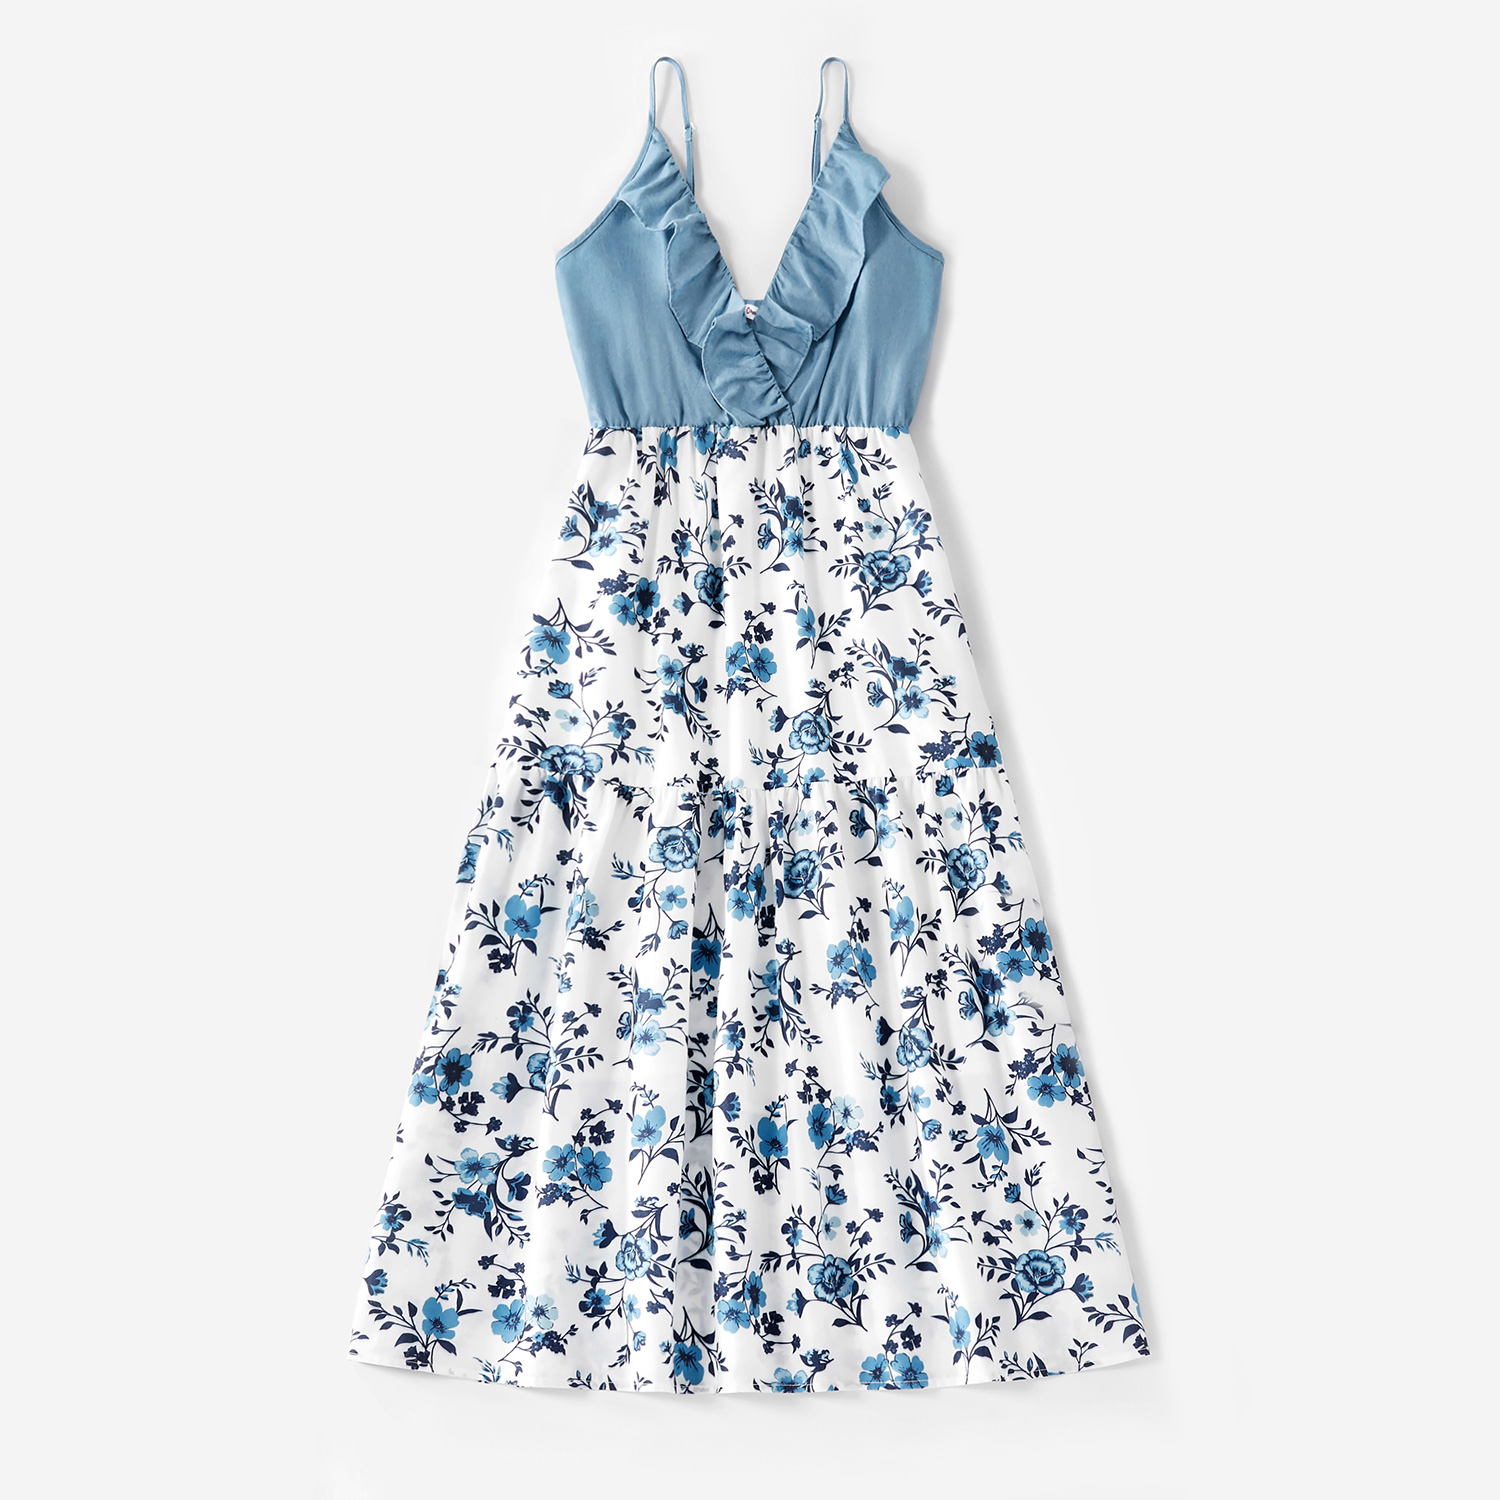 Summer Cotton Family Matching Onesies Floral Flounce Tank Dresses and Denim Tops Family Look Sets